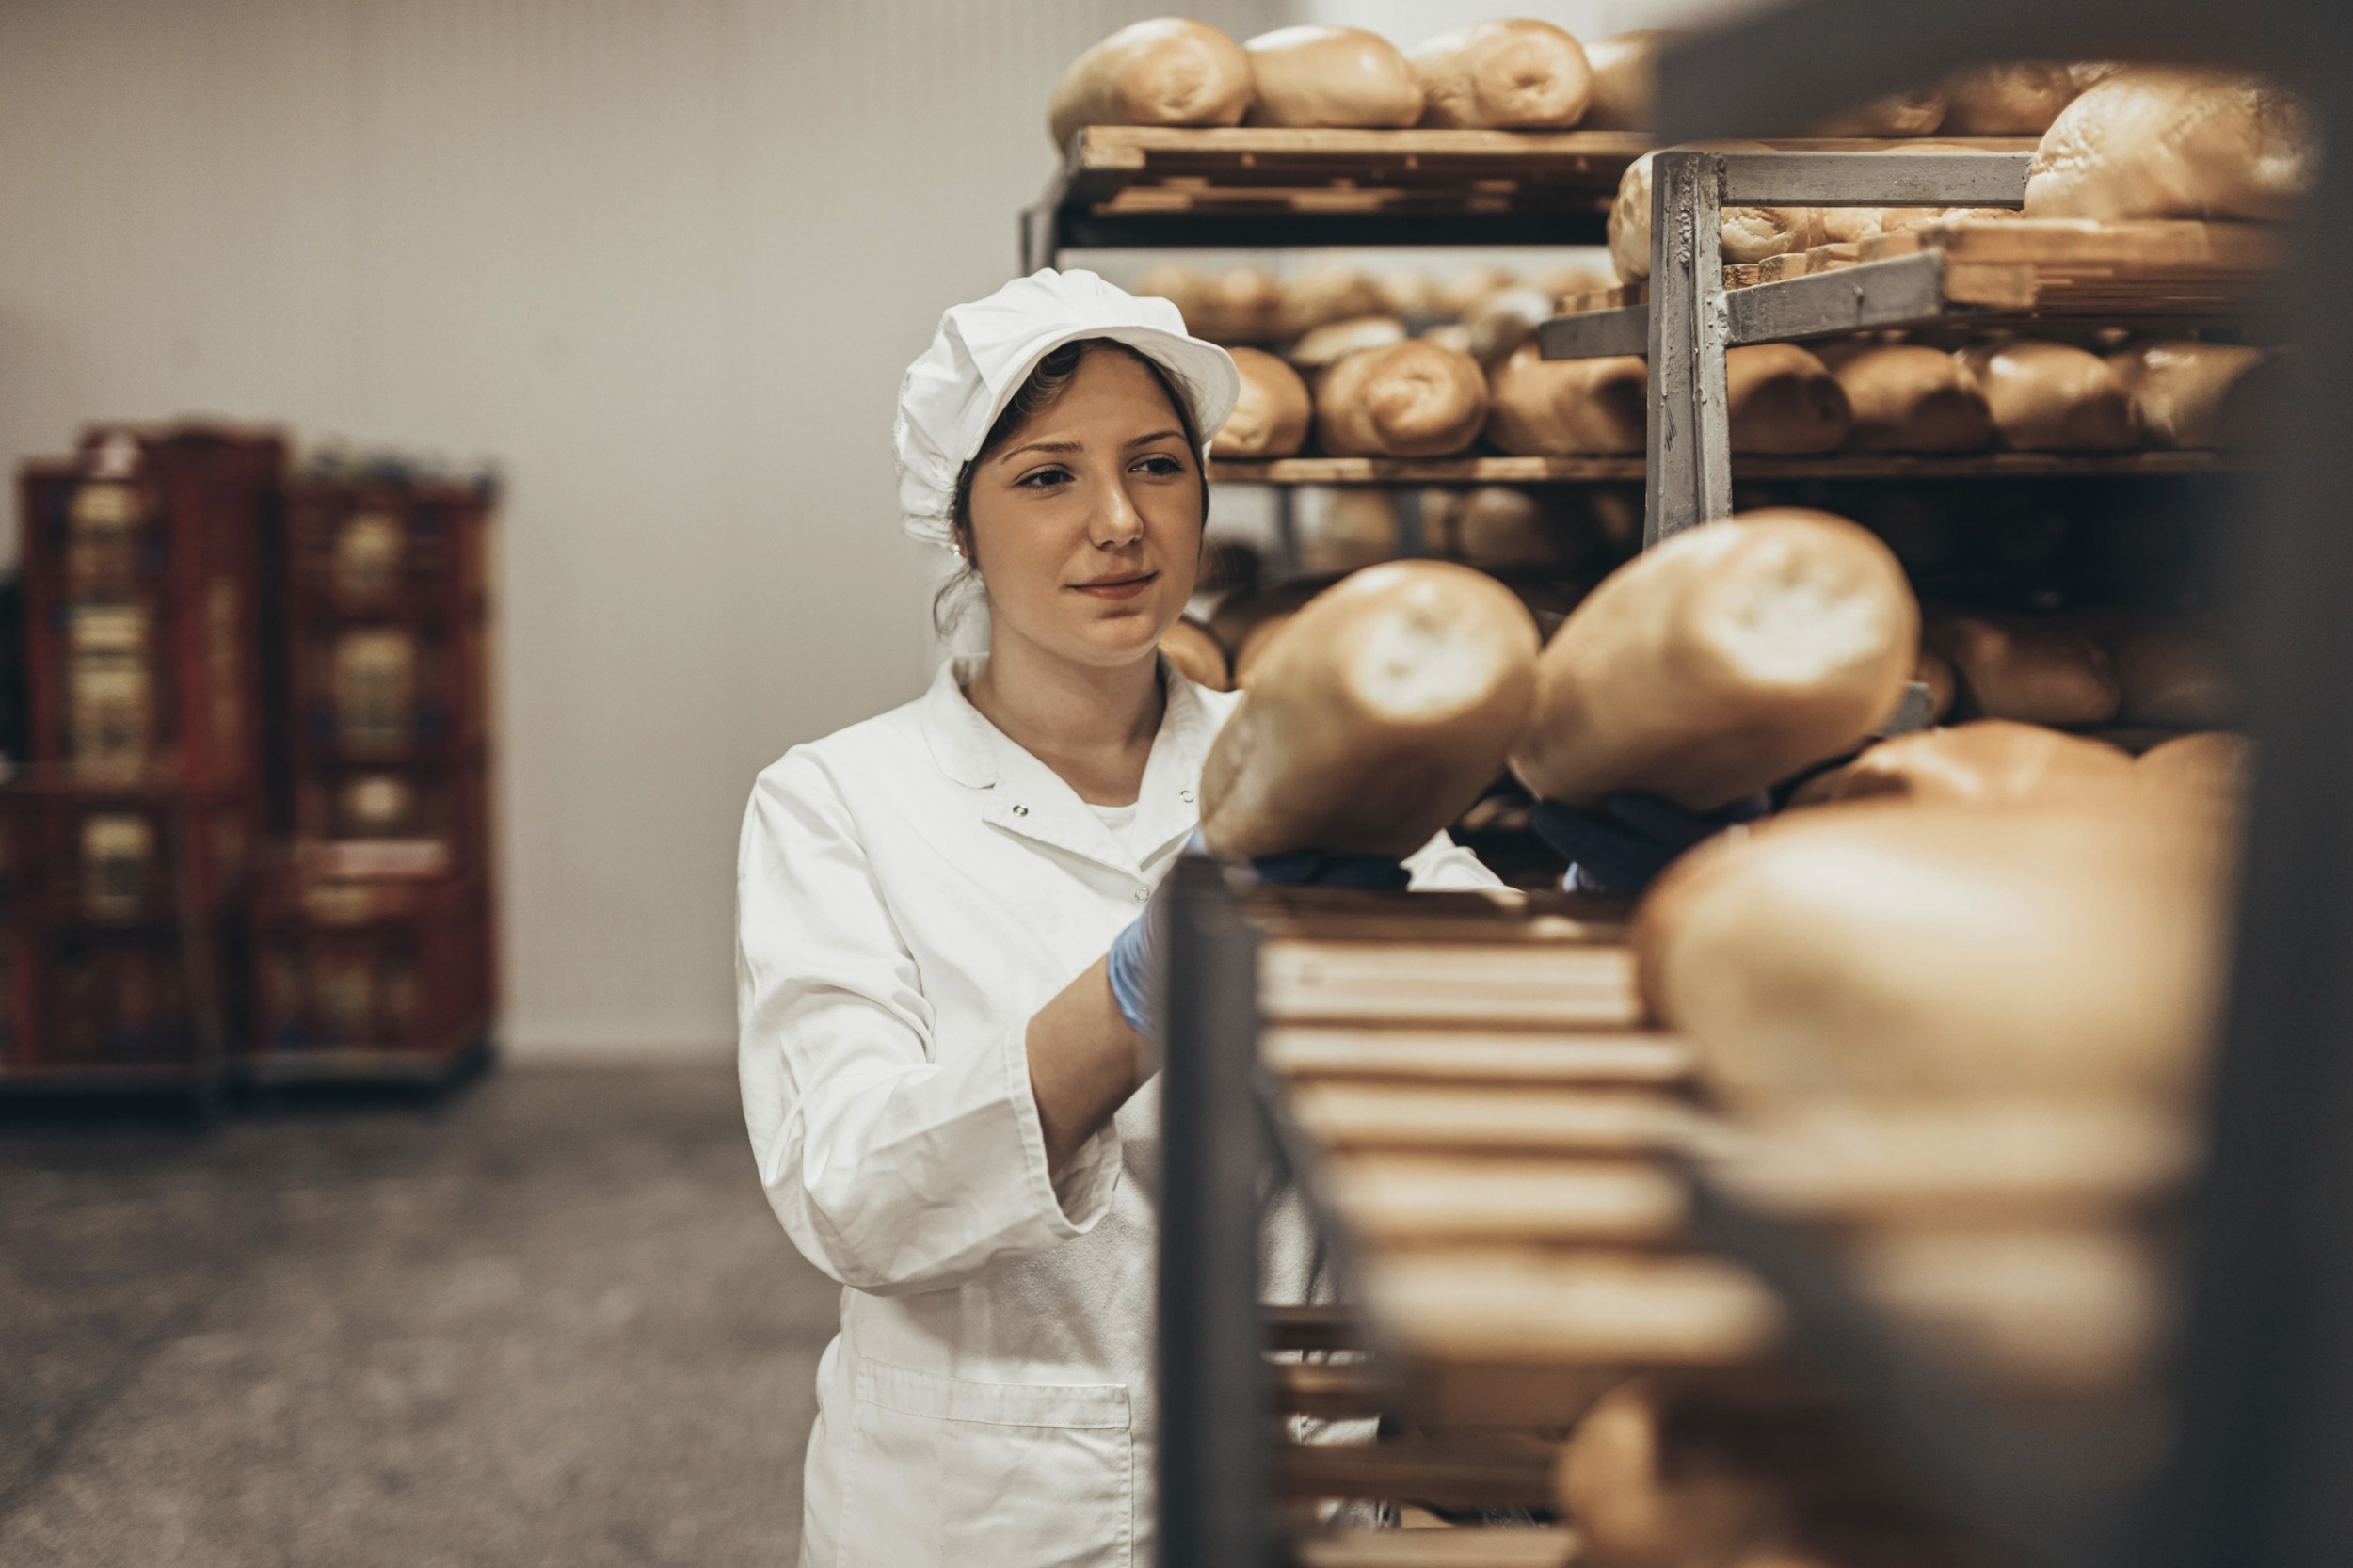 ETQ Reliance for food safety management system in bakery